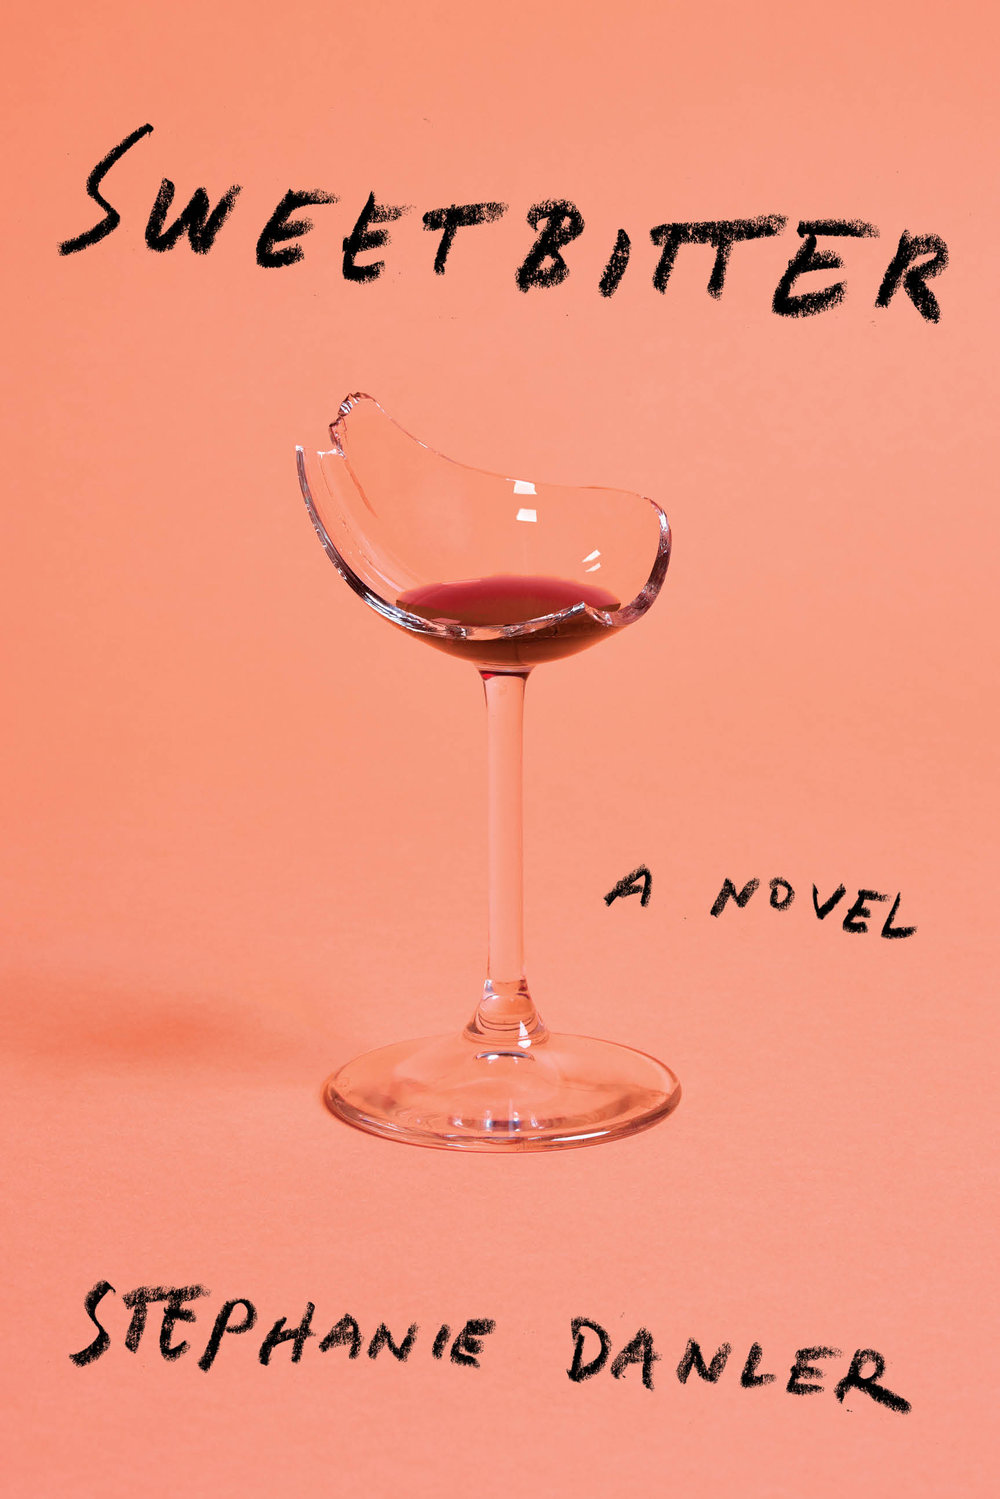 5 Books to Read that Inspired Great Television Series | 5) Sweetbitter (the book)